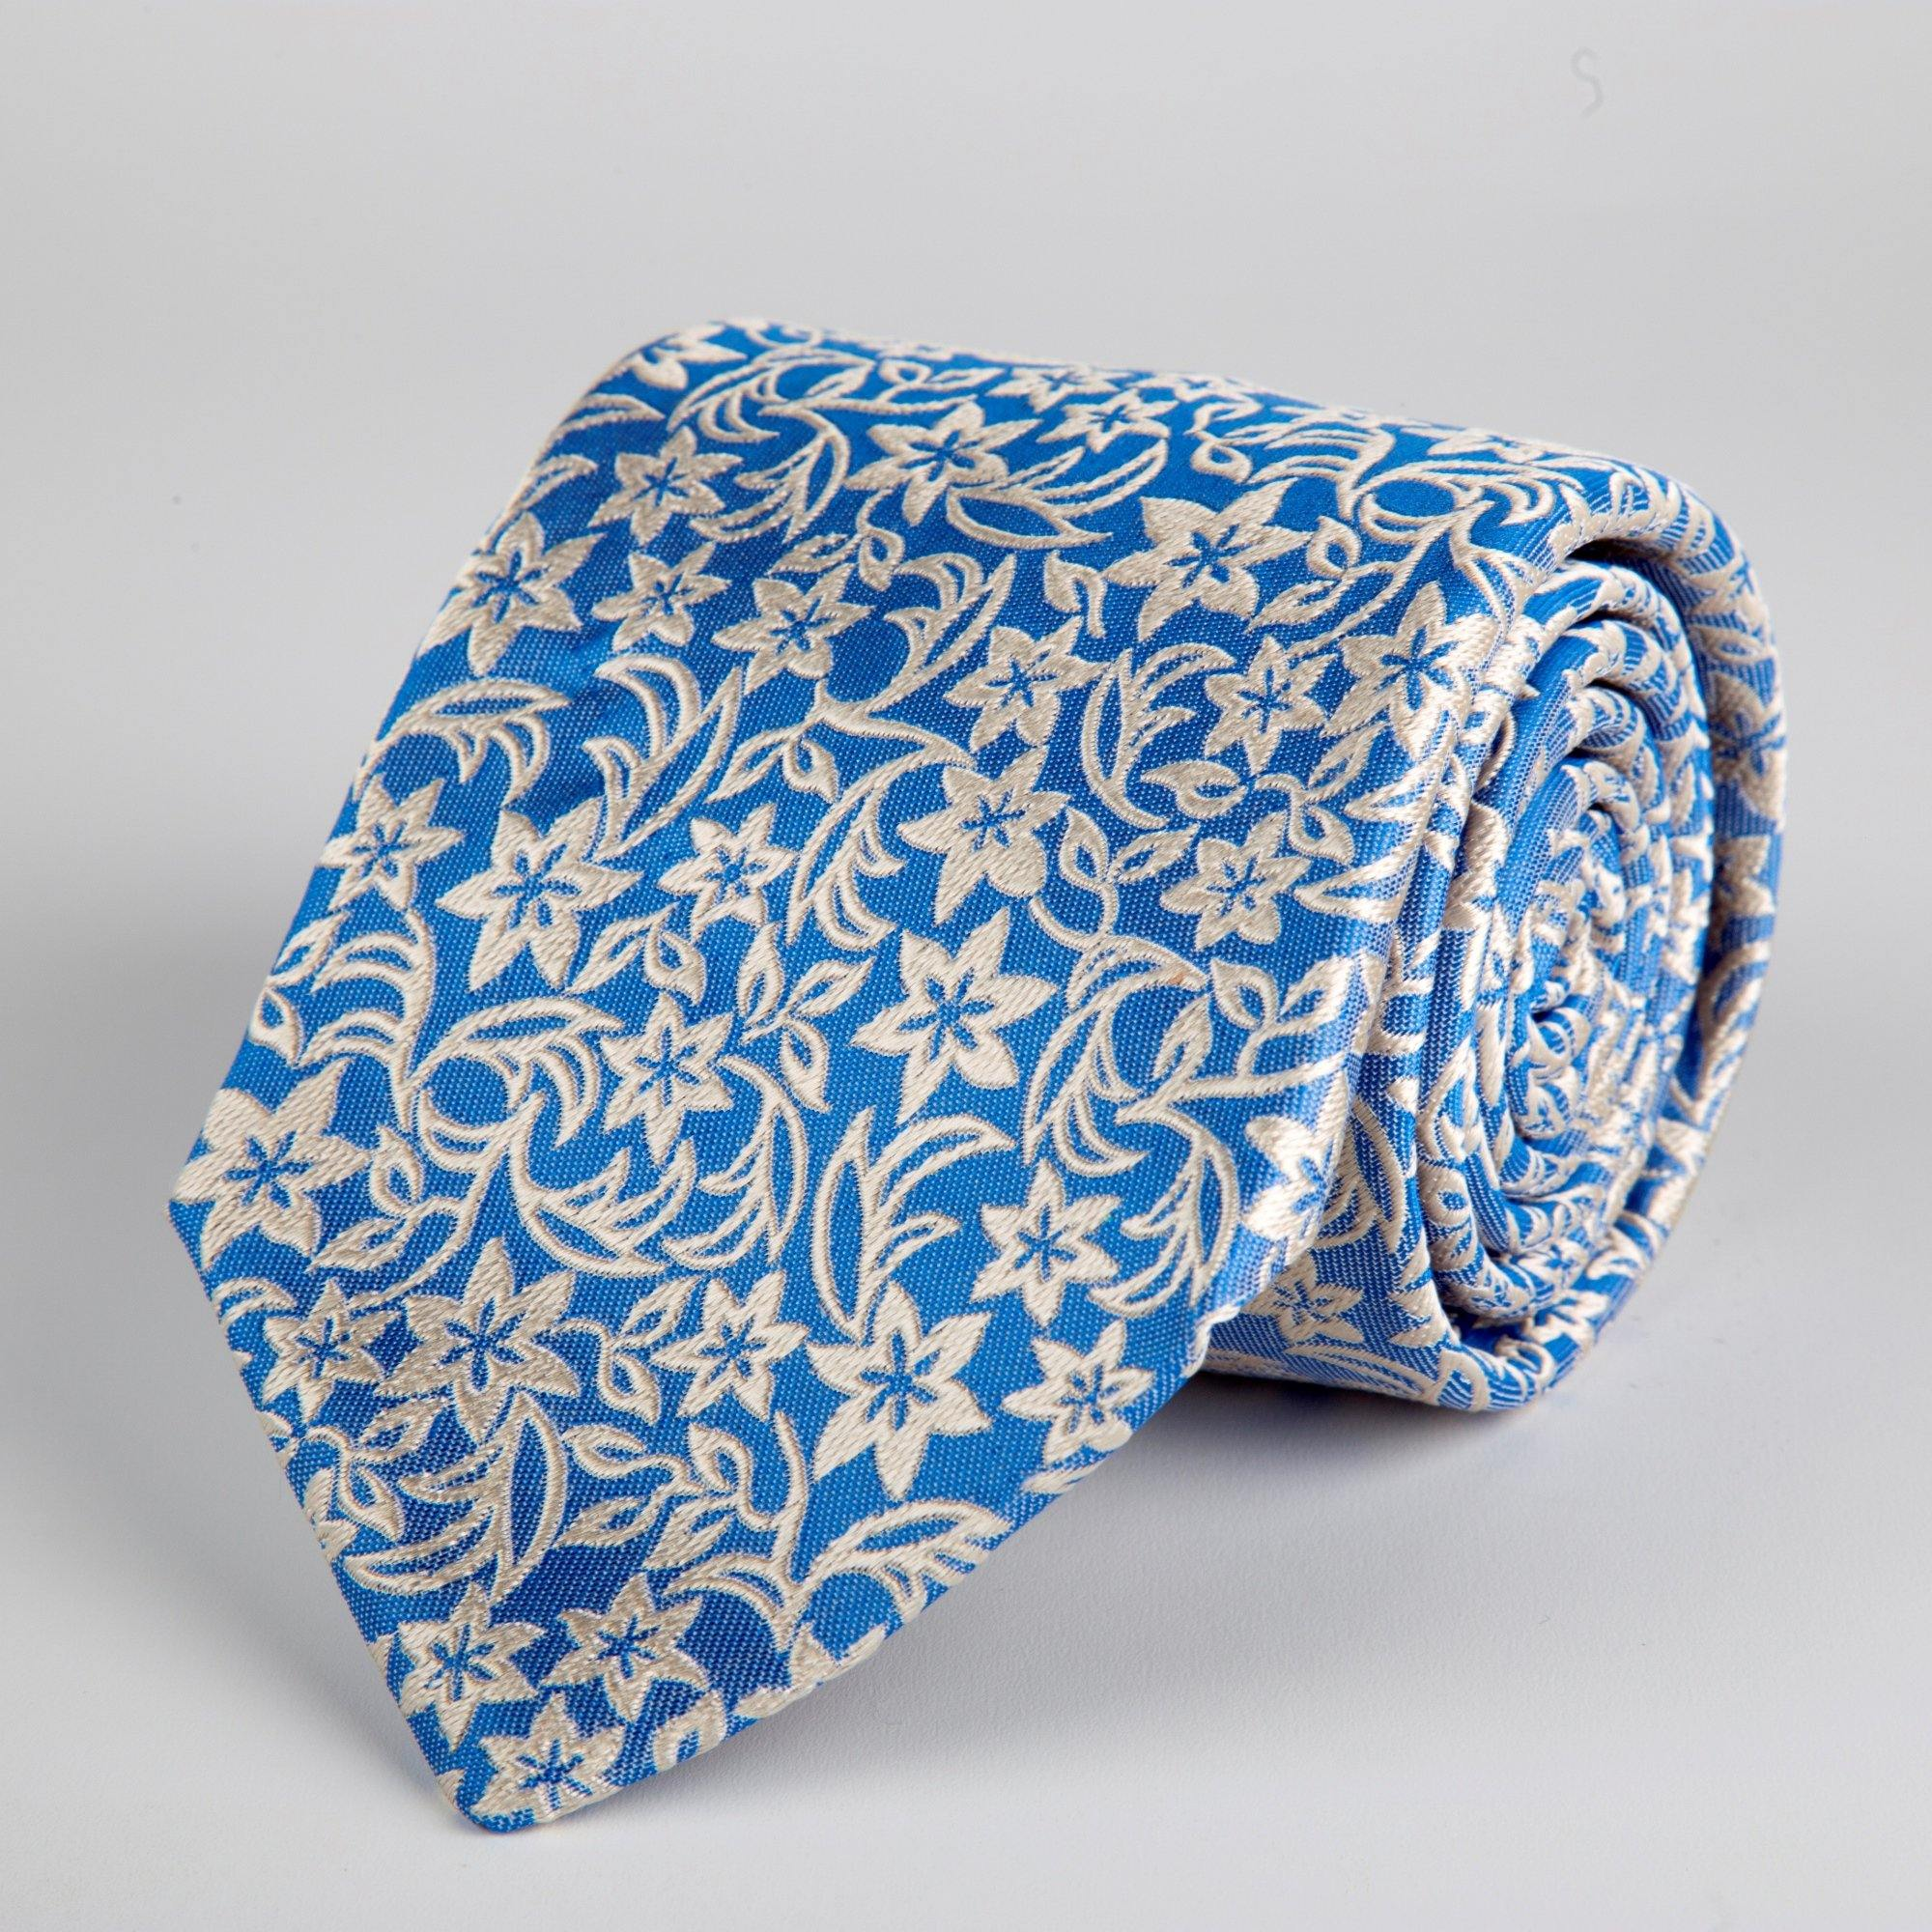 Blue Floral Woven Silk Tie Hand Finished - British Made